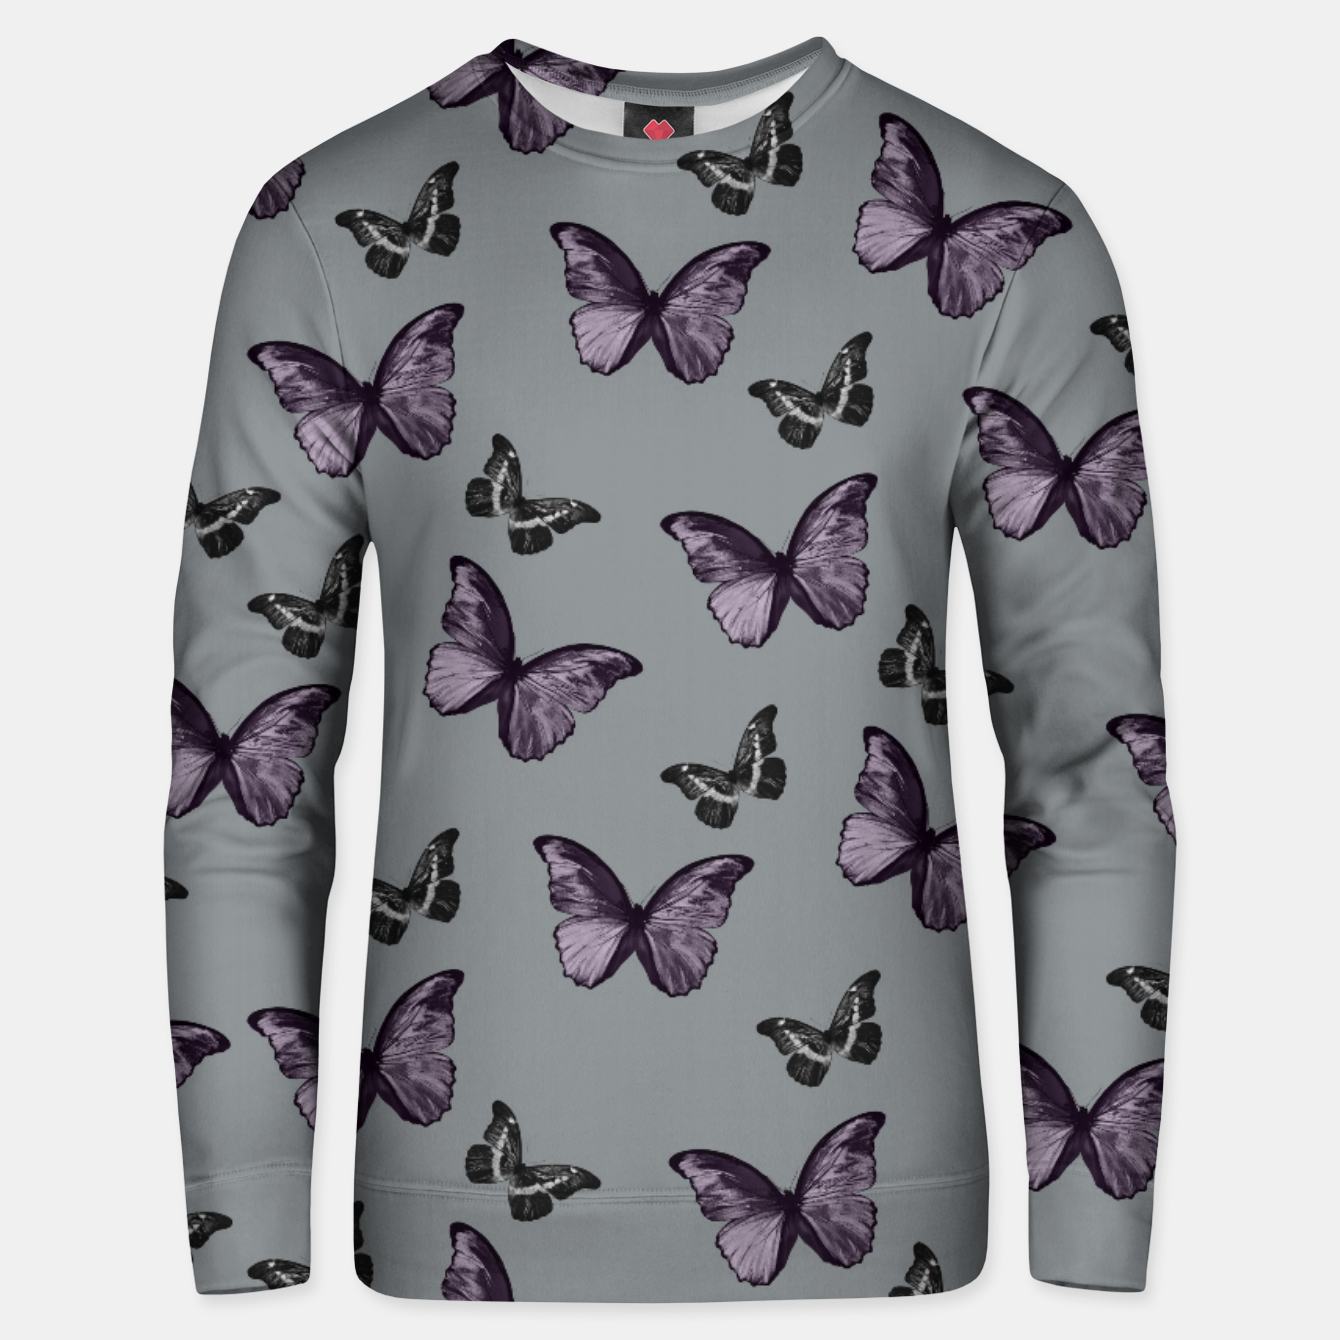 Foto Gray Lavender & Black Butterfly Glam #1 #pattern #decor #art Unisex sweatshirt - Live Heroes